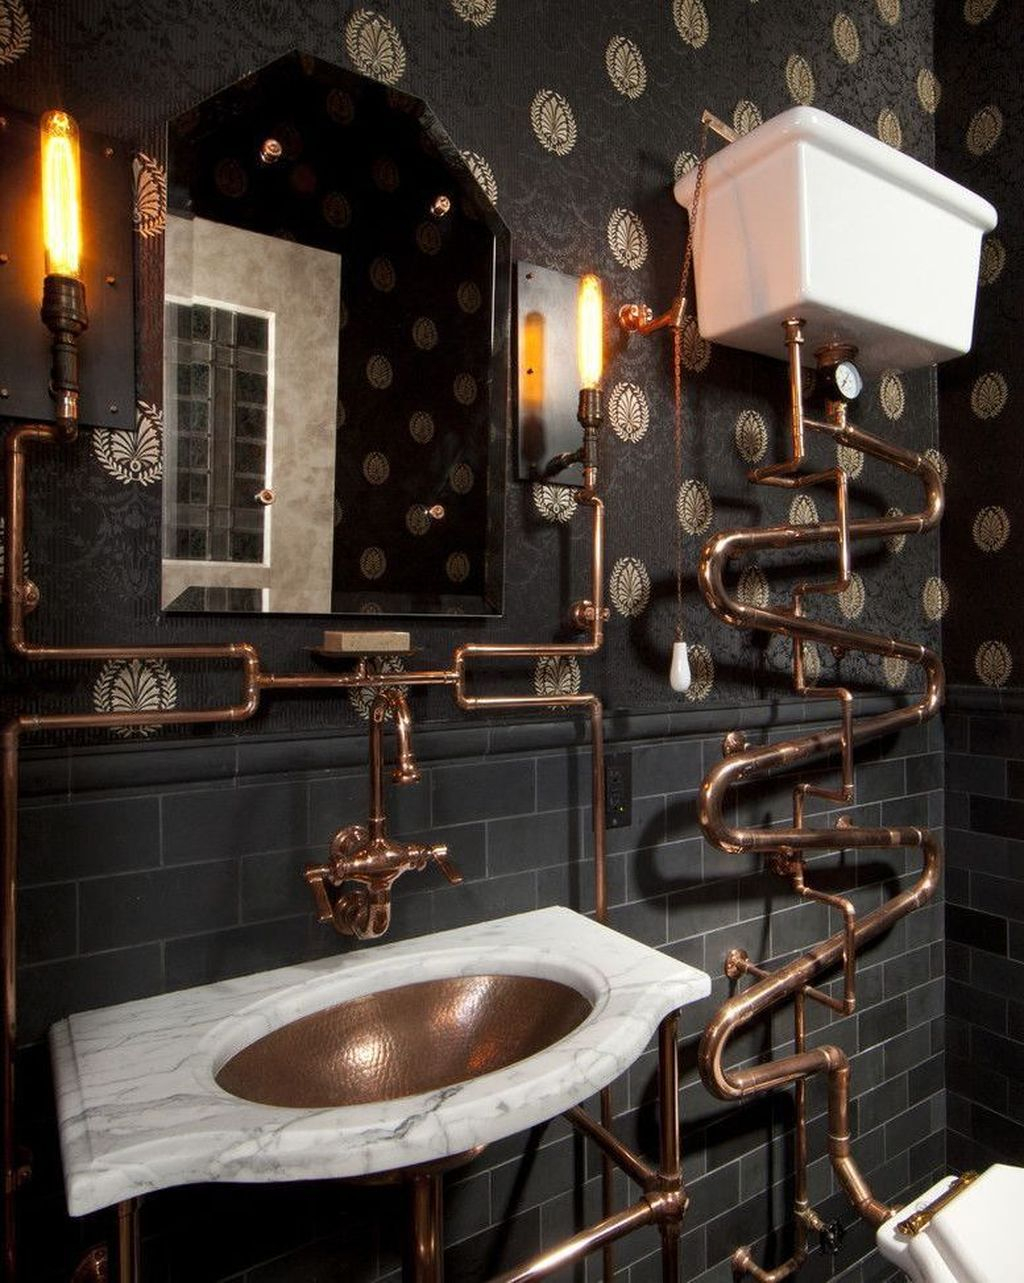 Creative Steampunk Room Design Ideas To Try Asap 35